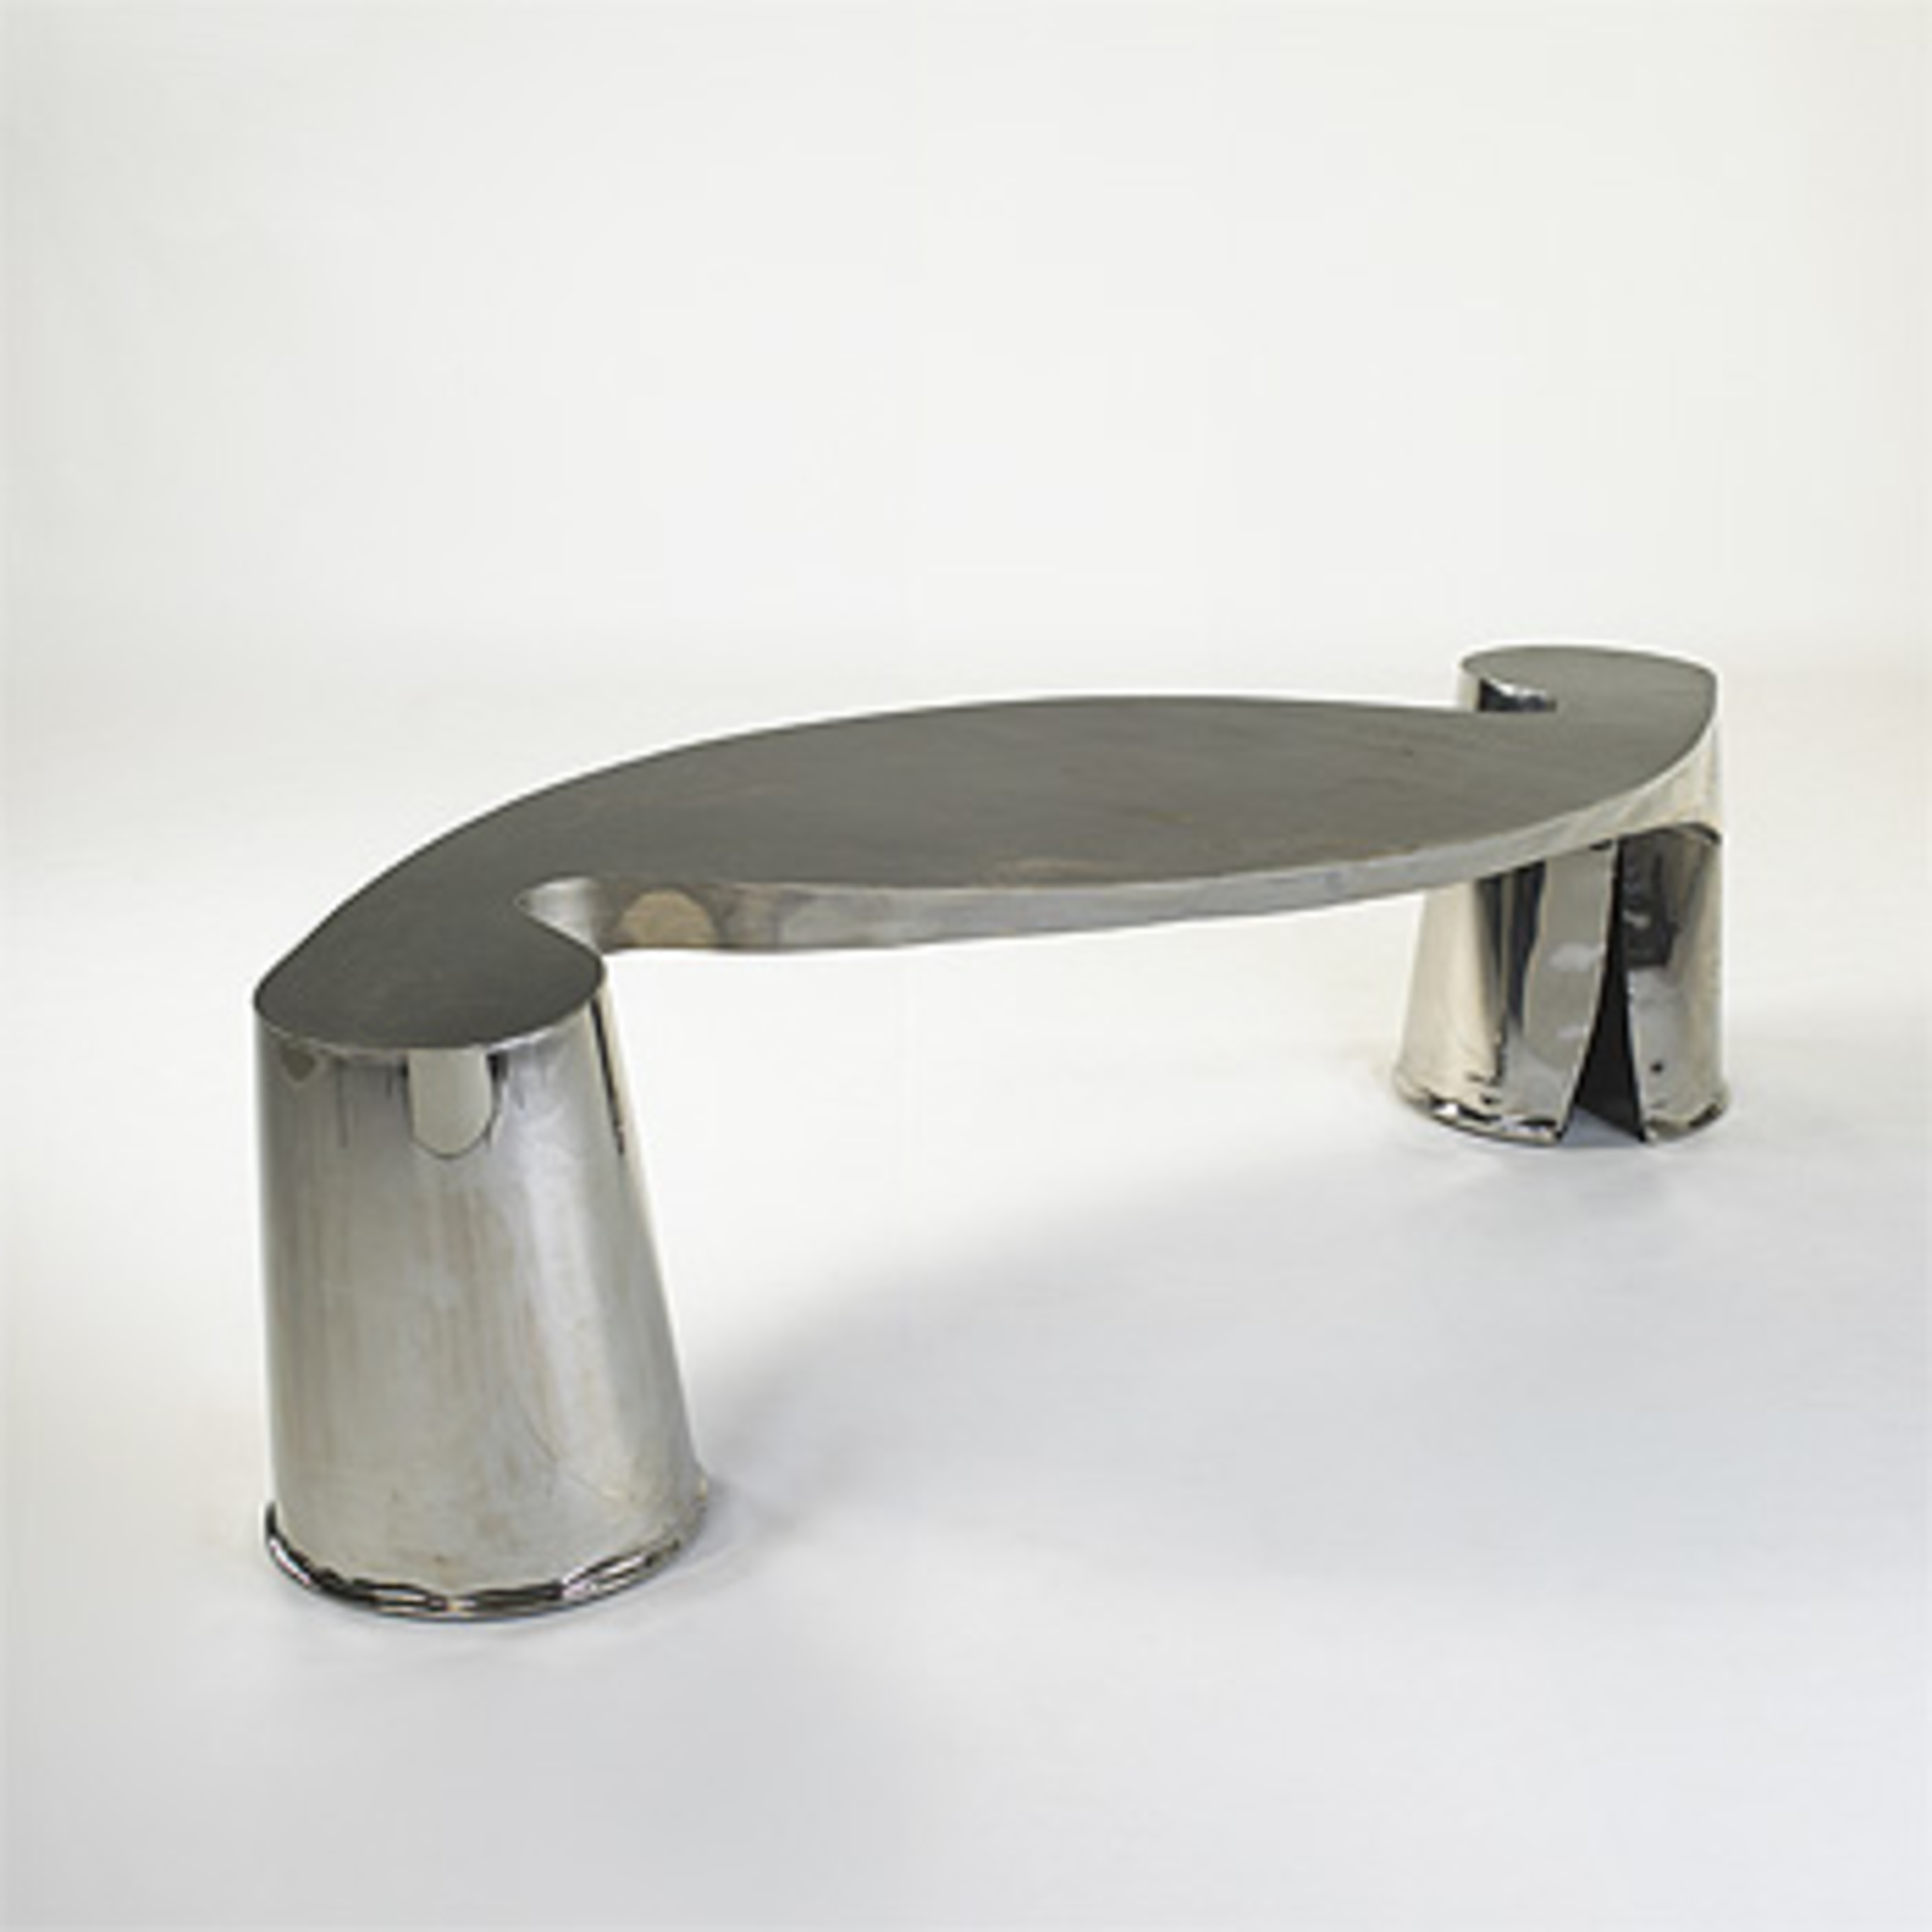 Big Sofa 290 Cm 239 Ron Arad Two Legs A Table Important 20th Century Design